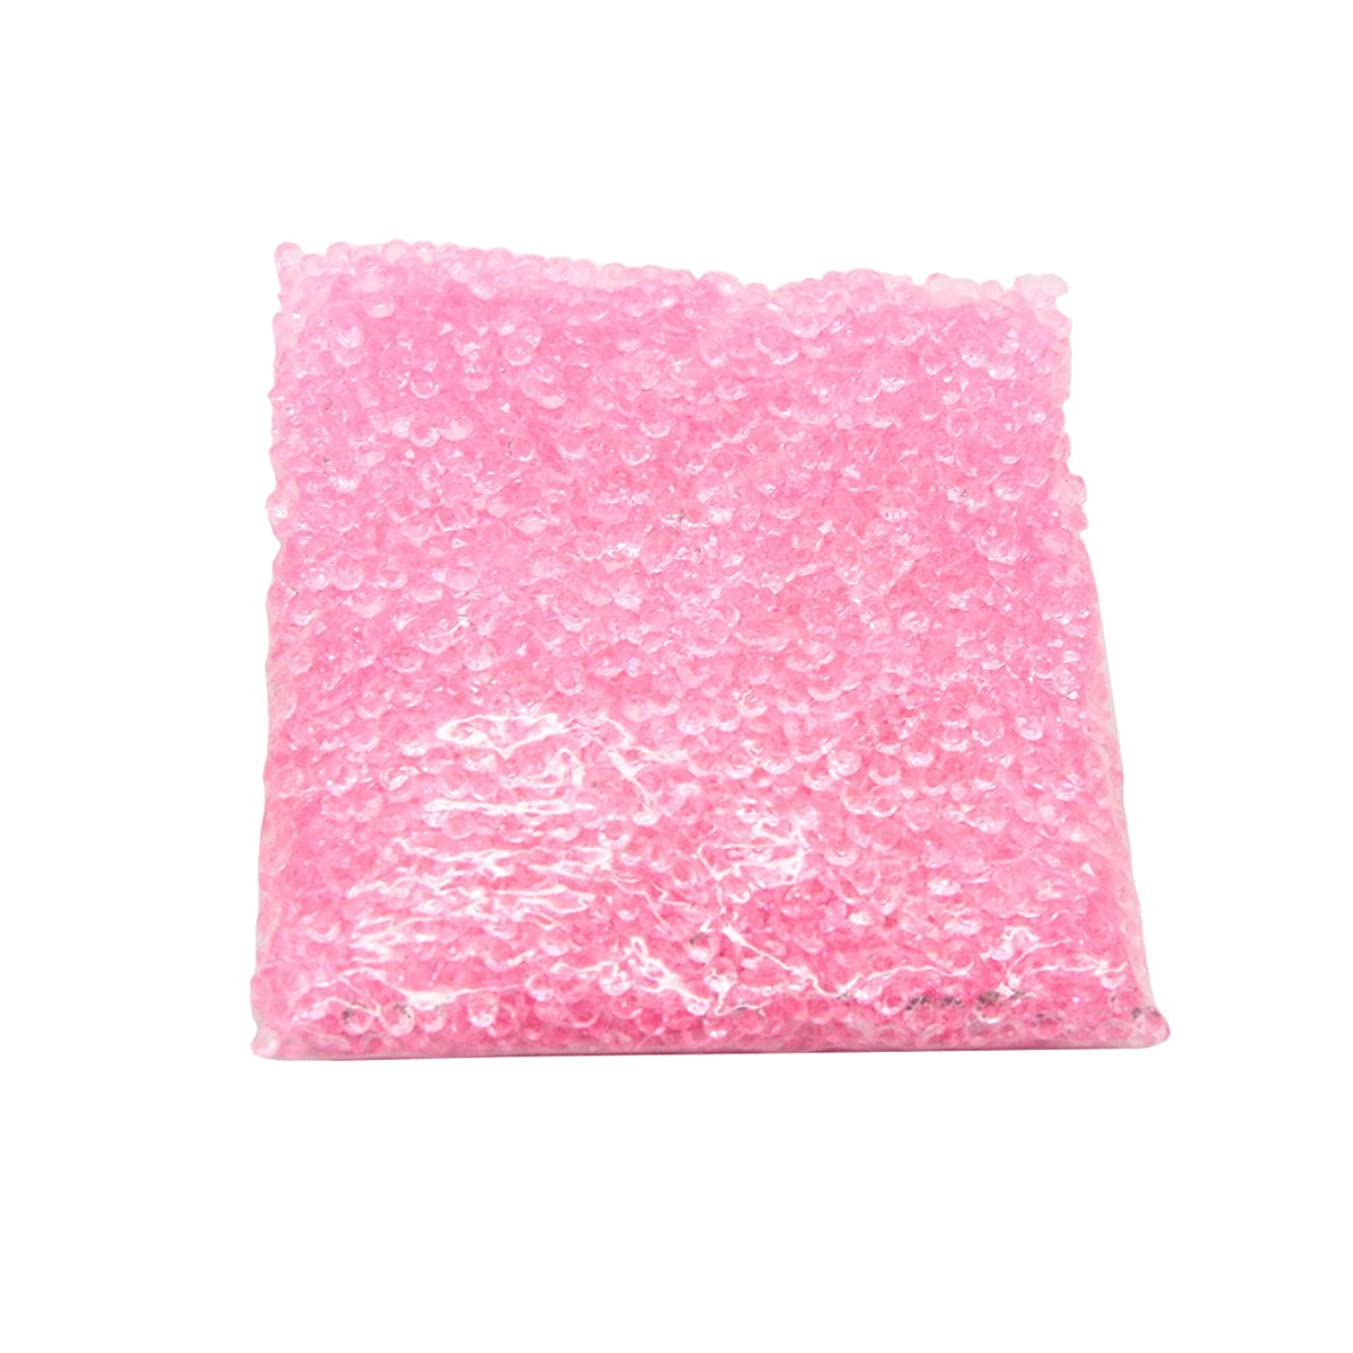 bouti1583 Pack of 5000Pcs Crystals Acrylic Diamonds Vase Filers Party Wedding Table Scattering Decoration Gems 0.2 inch